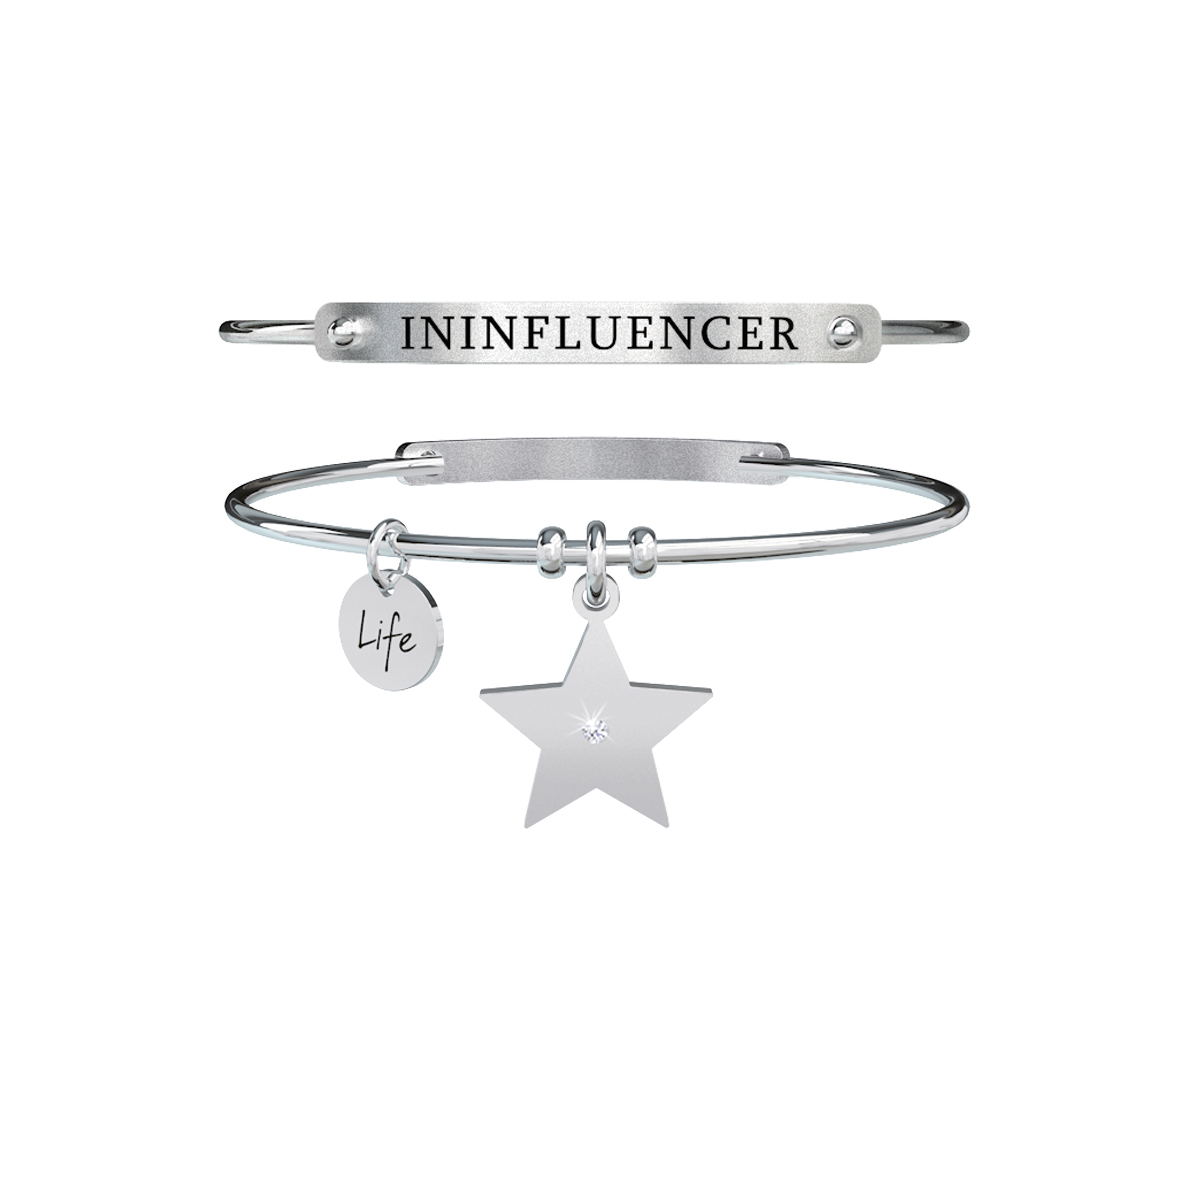 Bracciale KIDULT Free time acciaio 316L 731358 ininfluencer